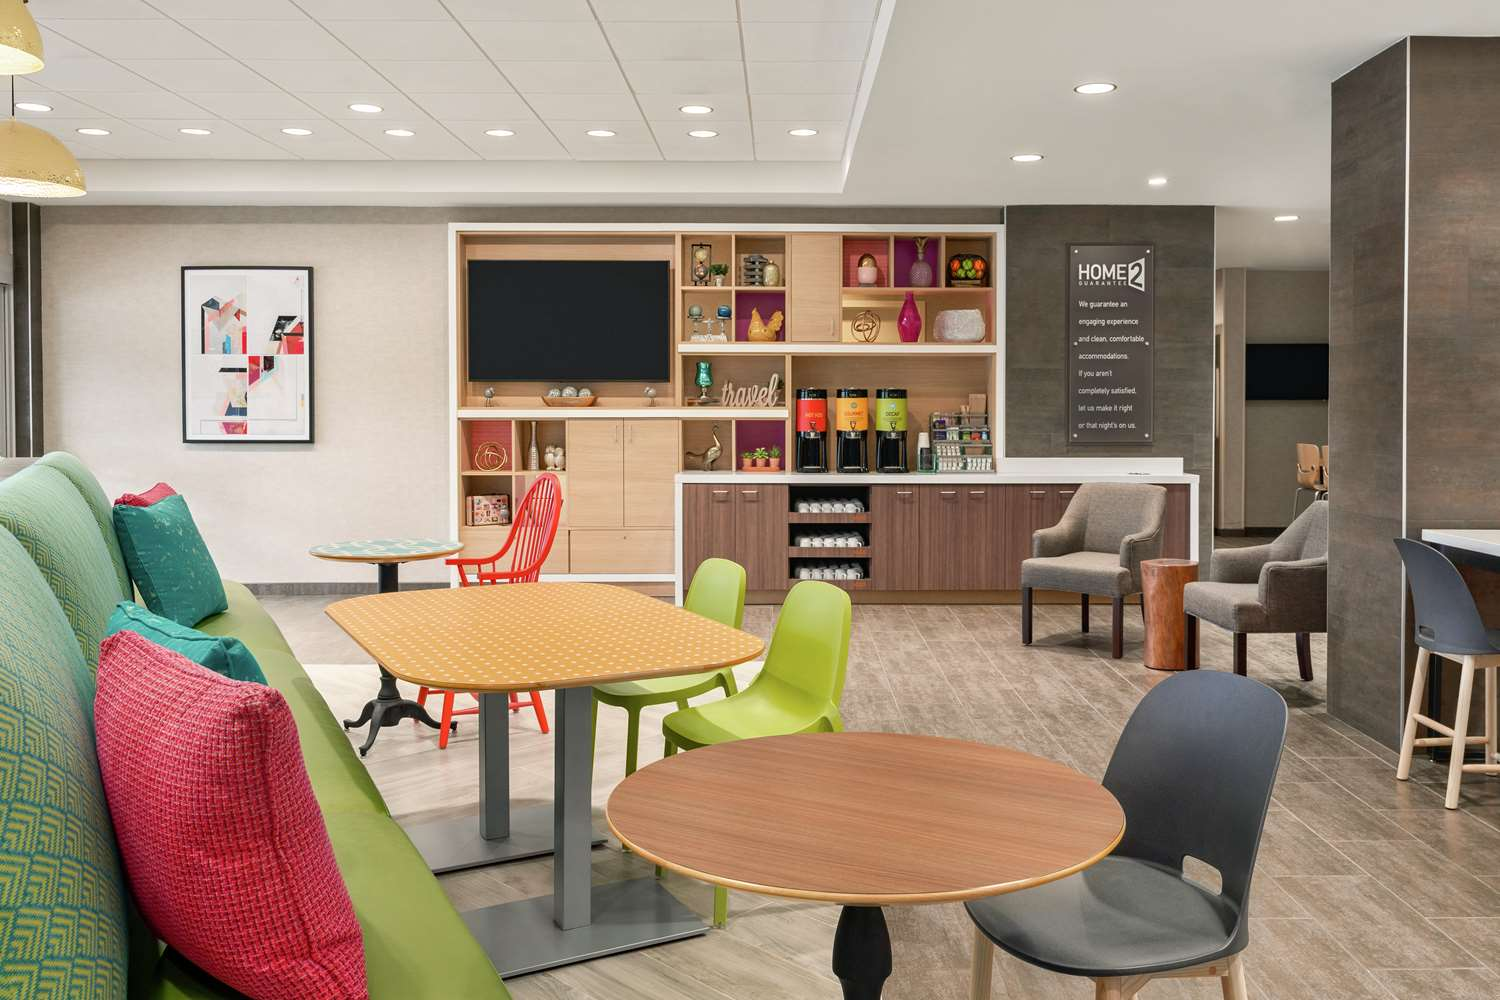 Lobby - Home2 Suites by Hilton North Harrisburg